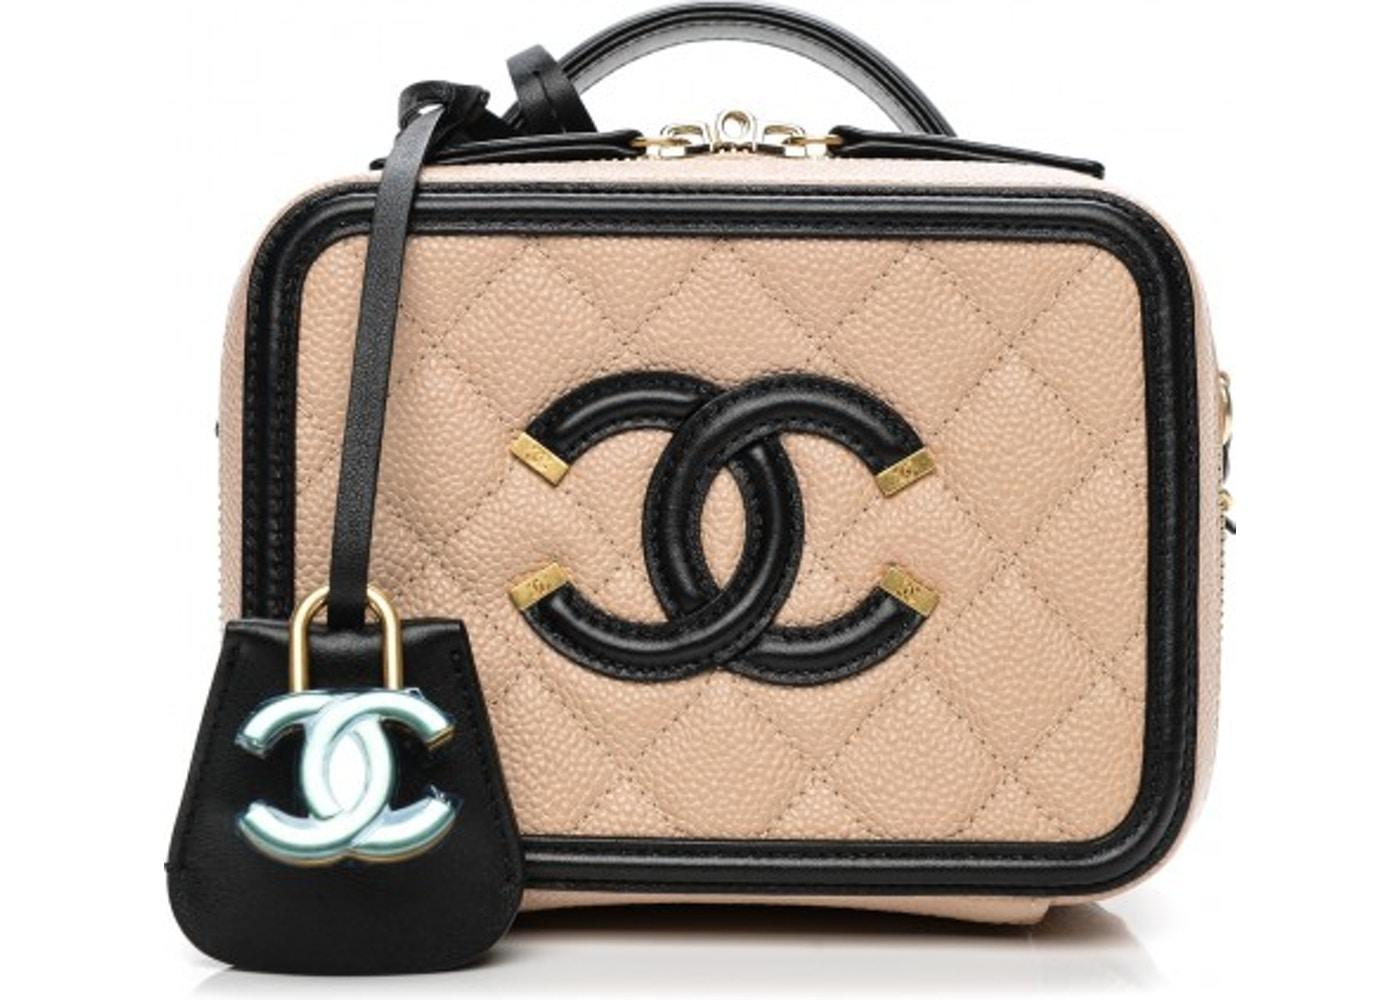 e0300f8dd052 Chanel Vanity Case Diamond Quilted CC Filigree Small Beige/Black